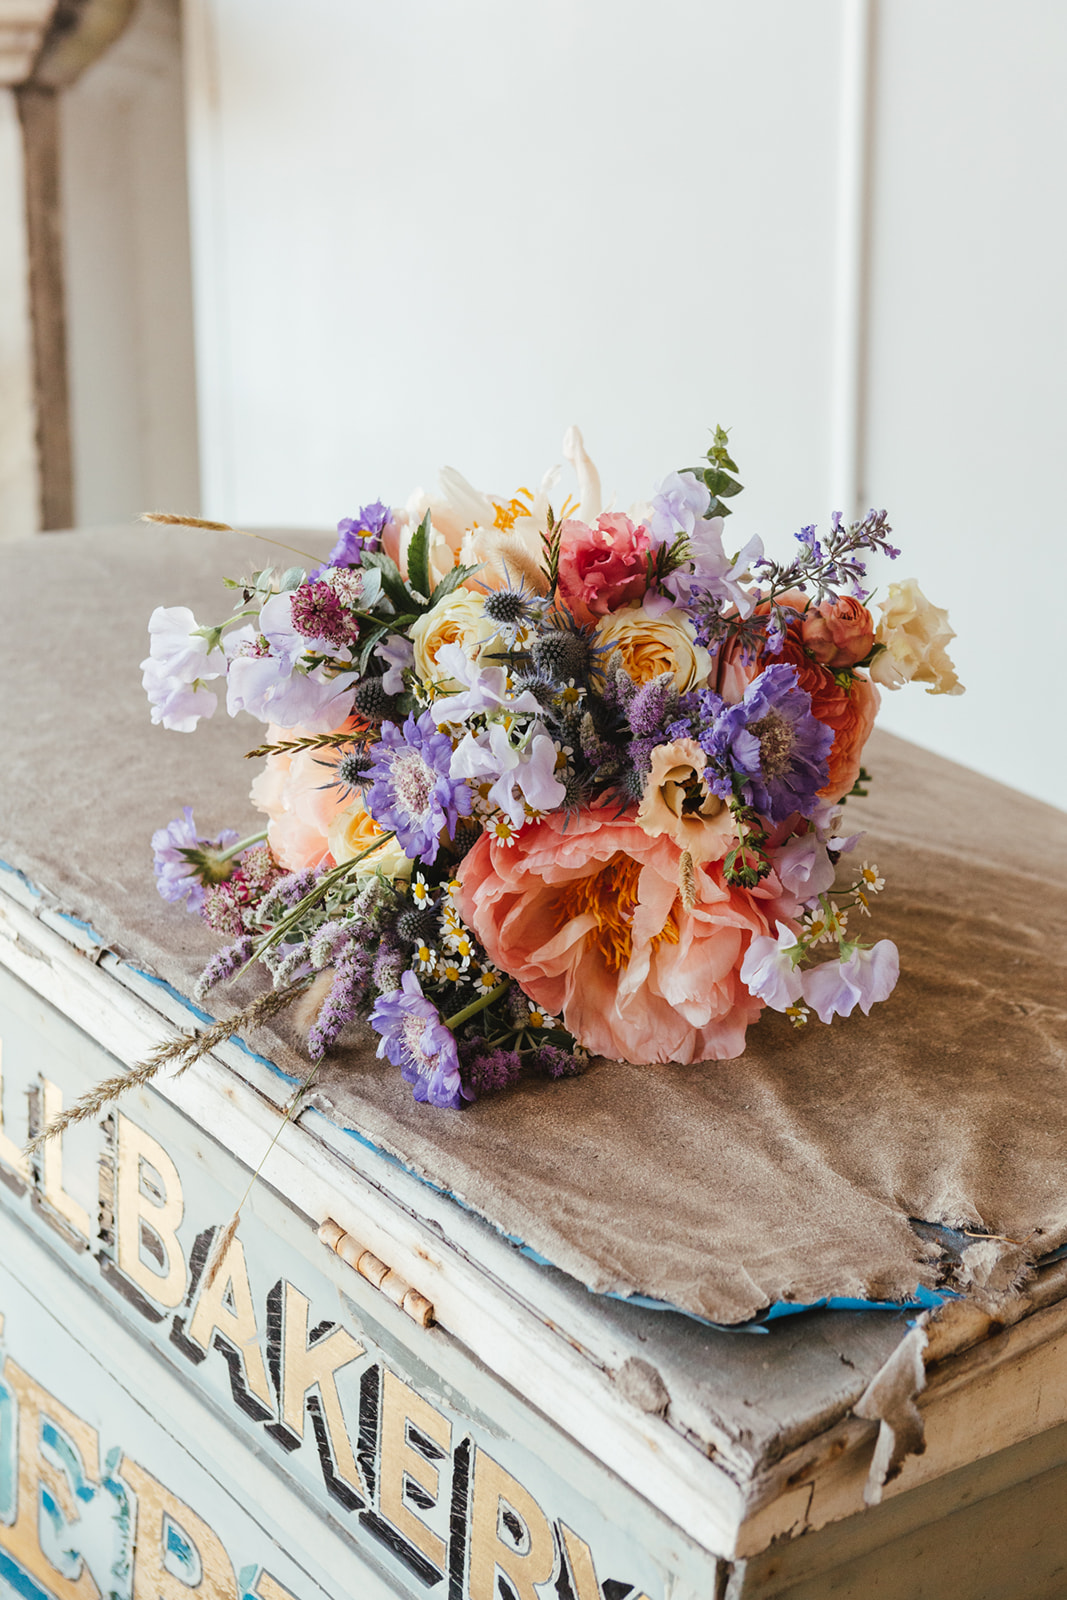 A pretty pastel colour bouquet by Wild Rubus the florist